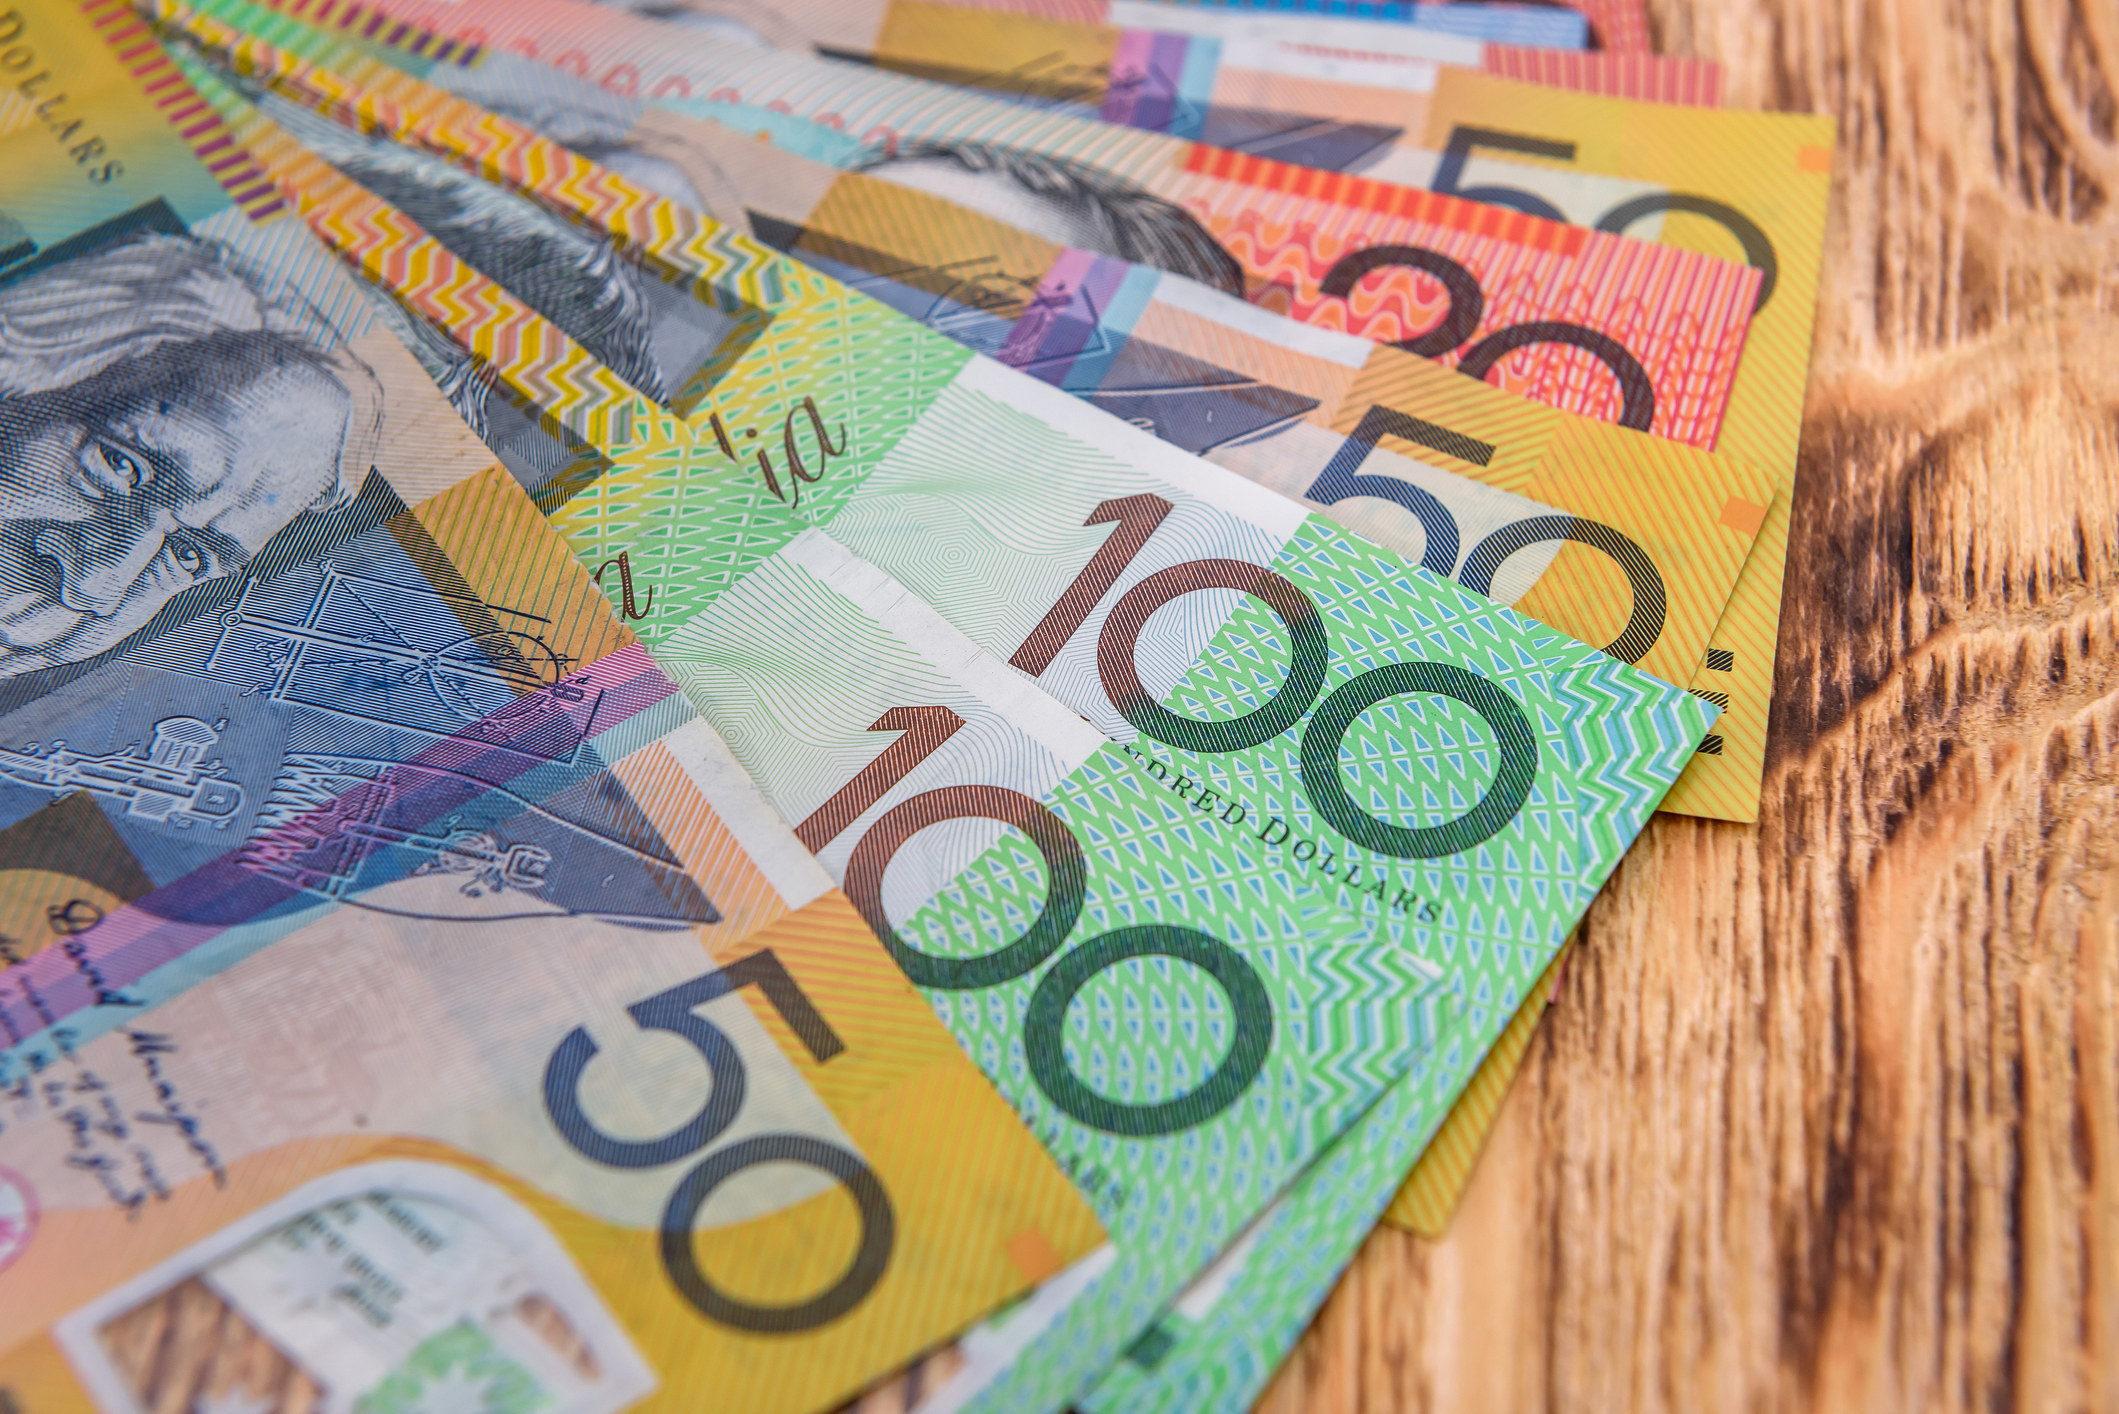 australian $50, $100, and $20 banknotes, which are all different colors